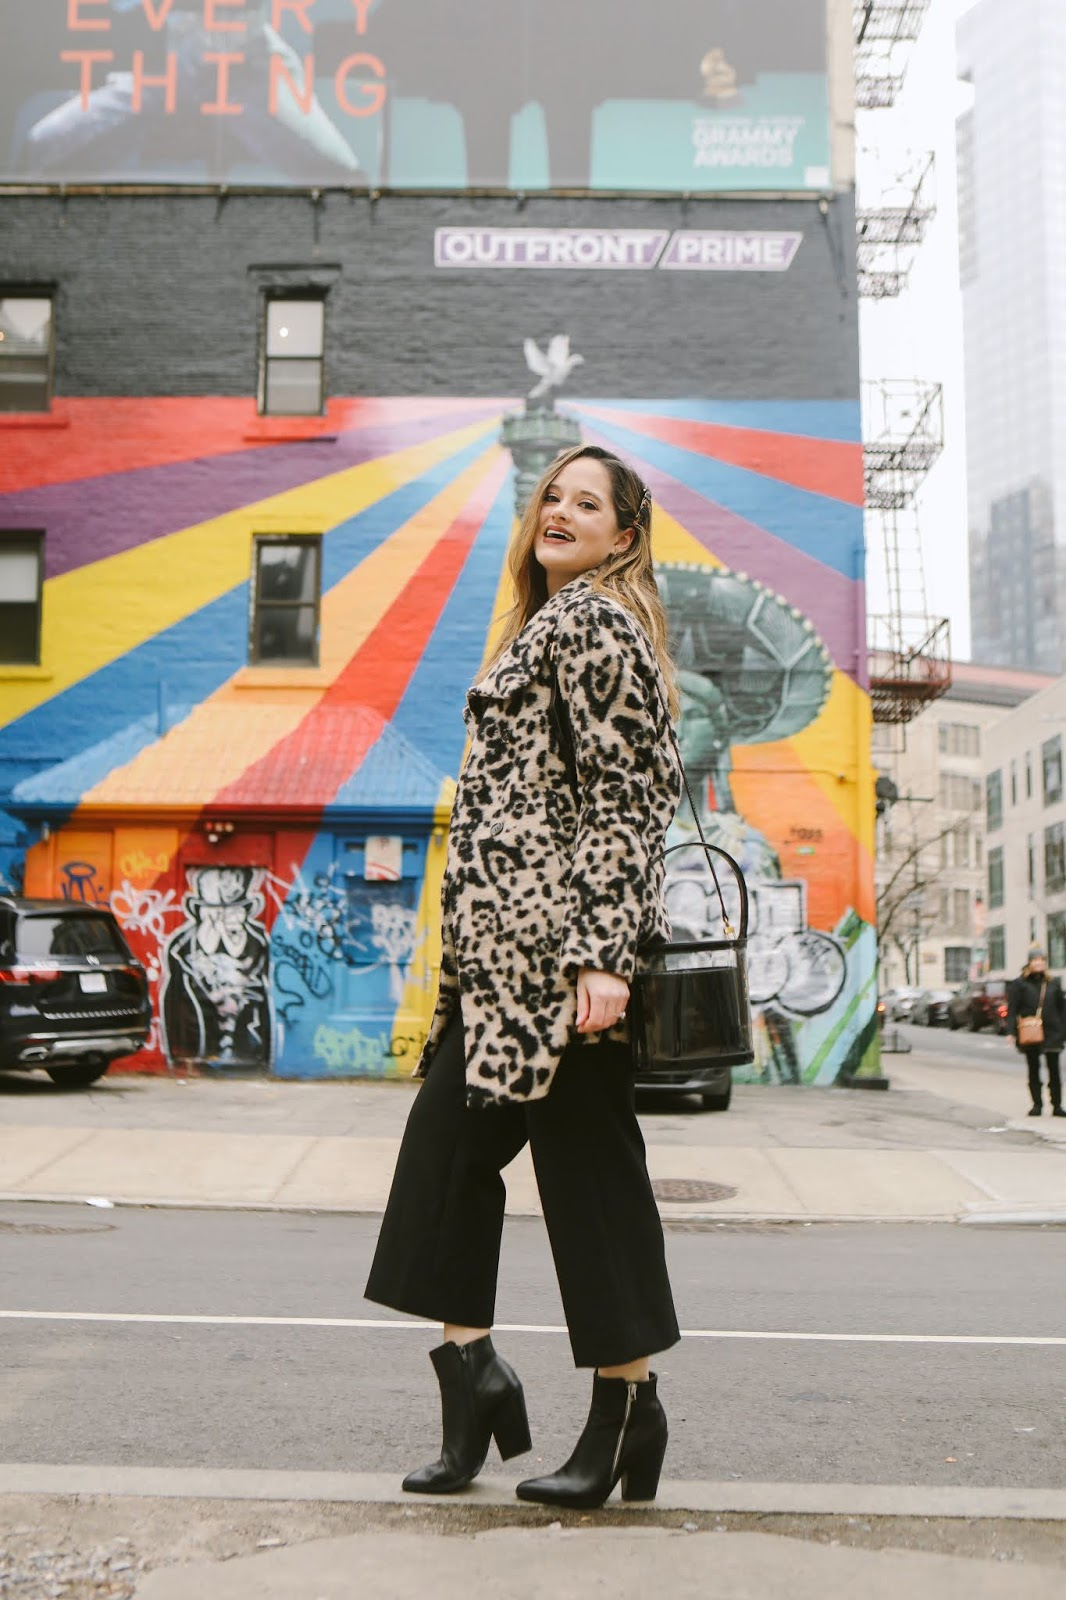 Nyc fashion blogger Kathleen Harper's street style with a leopard coat.